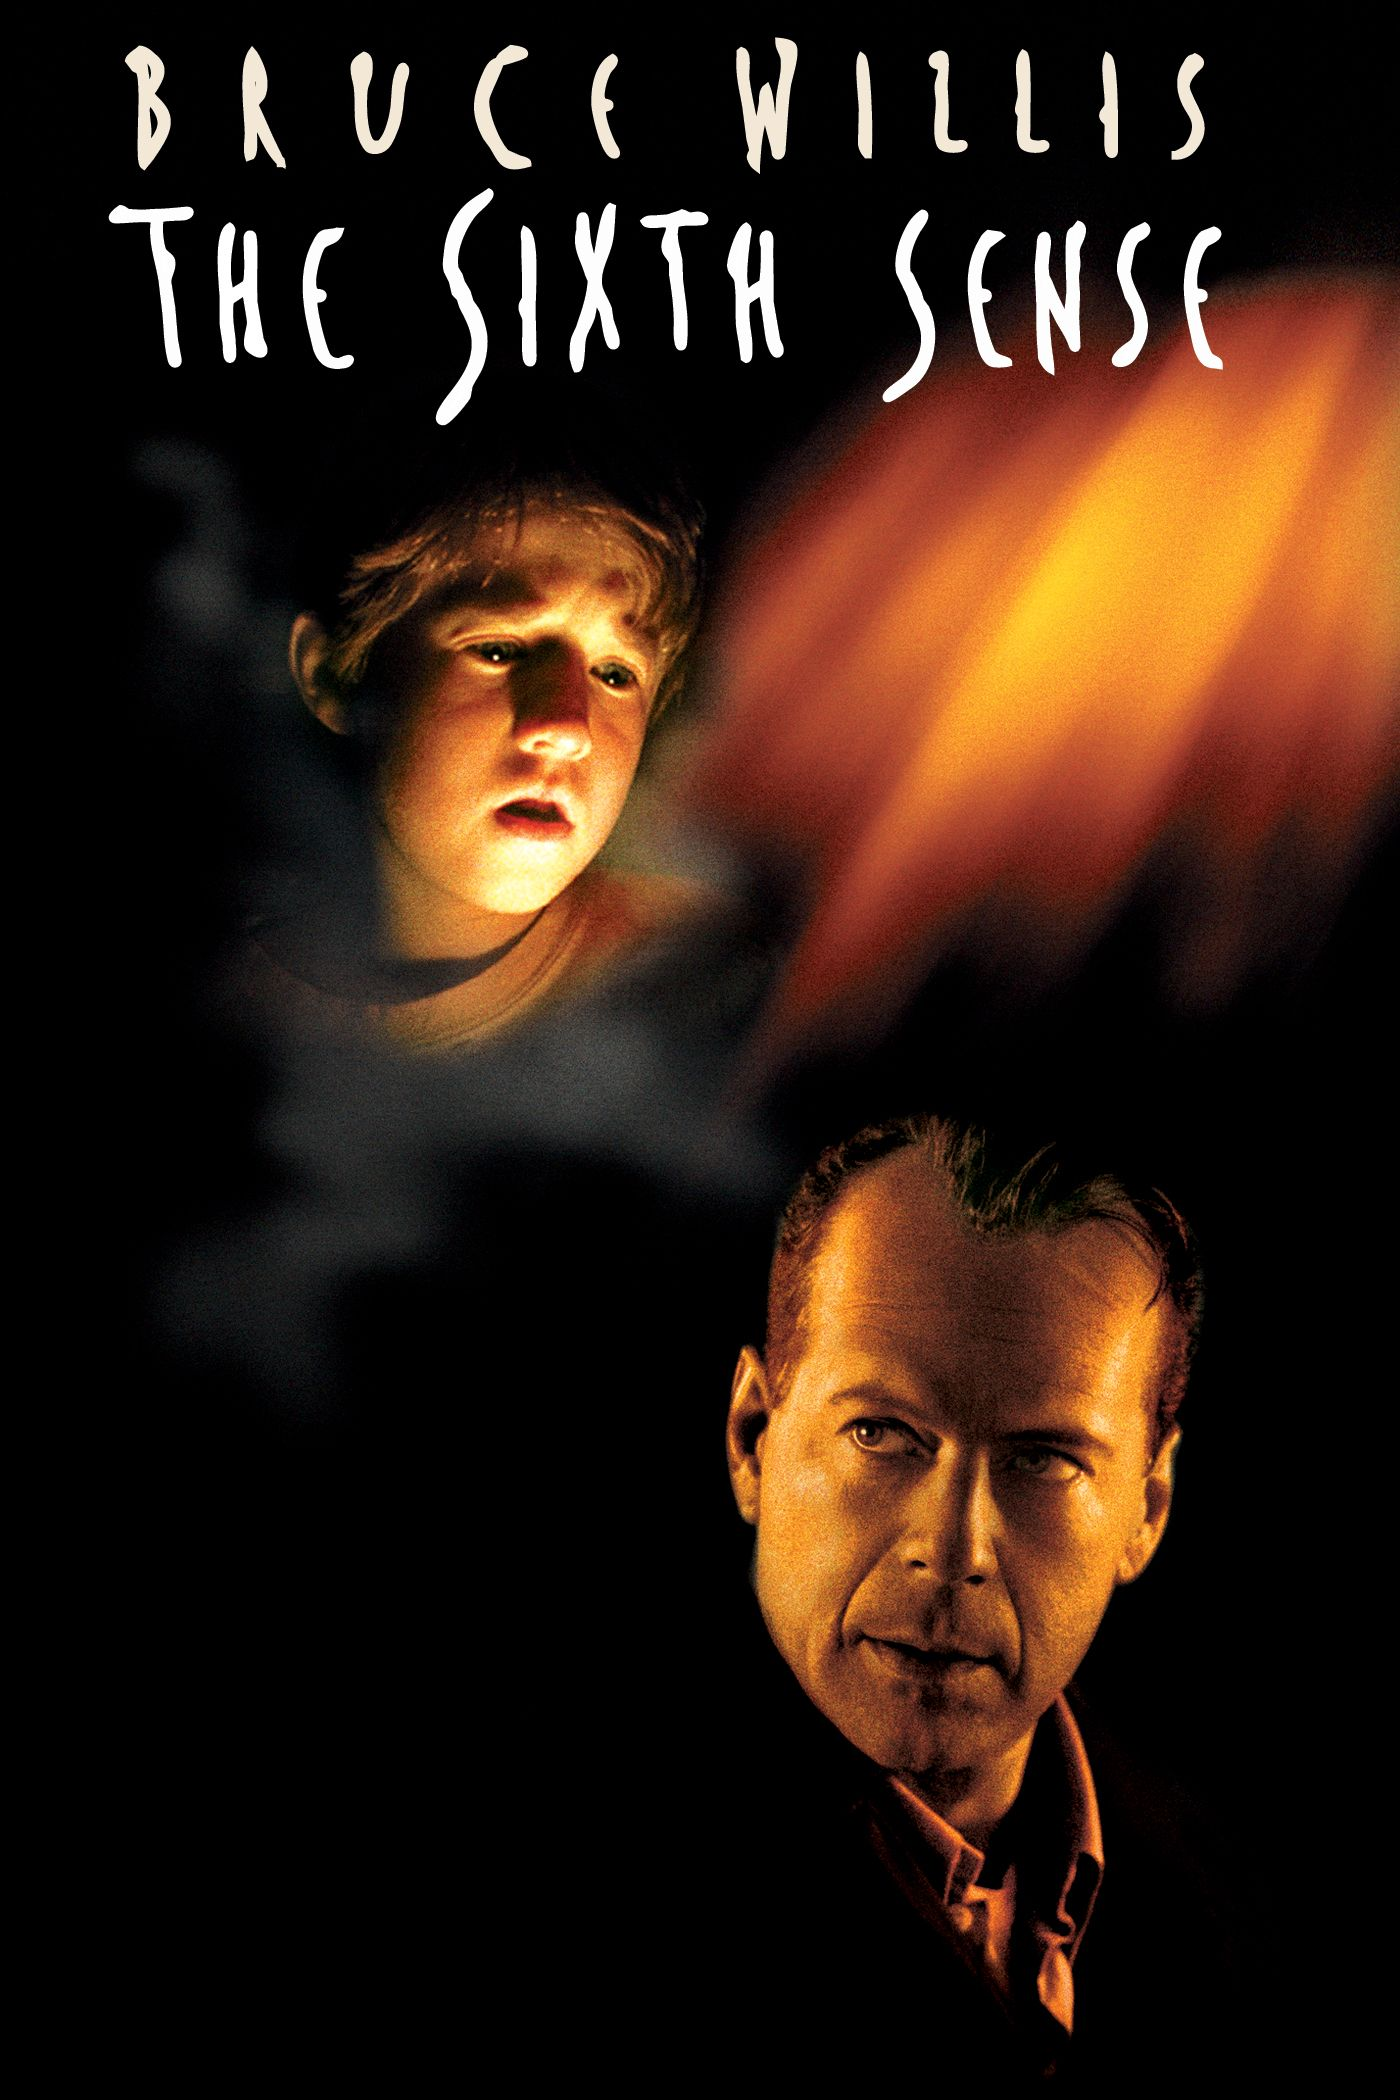 The Sixth Sense (1999) - Directed by: M. Night ShyamalanStarring: Bruce Willis, Haley Joel Osment, Toni ColletteRated: PG13Running Time: 1h 47mTMM Score: 5 stars out of 5STRENGTHS: Acting, Story TellingWEAKNESSES: Unimaginative Cinematography, Weaker Theme